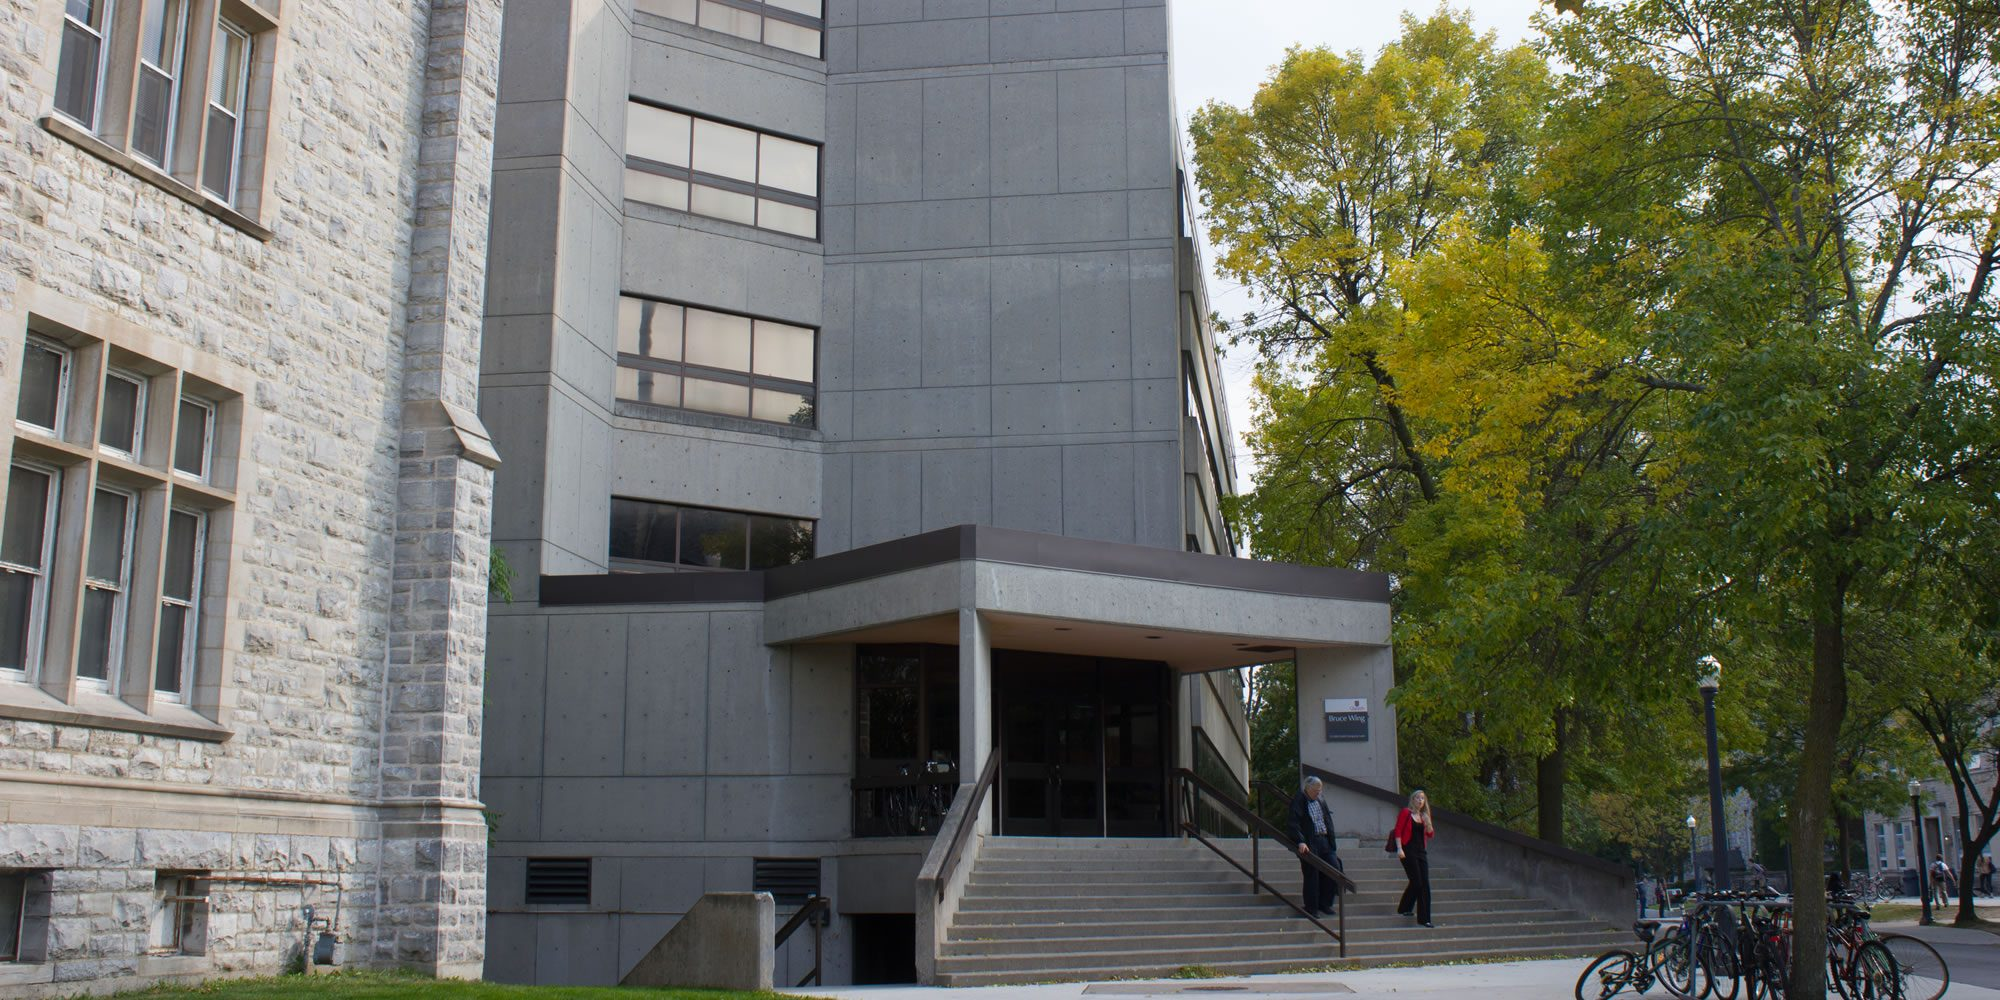 Goodwin Hall at Queen's University - home of the Robert M. Buchan Department of Mining